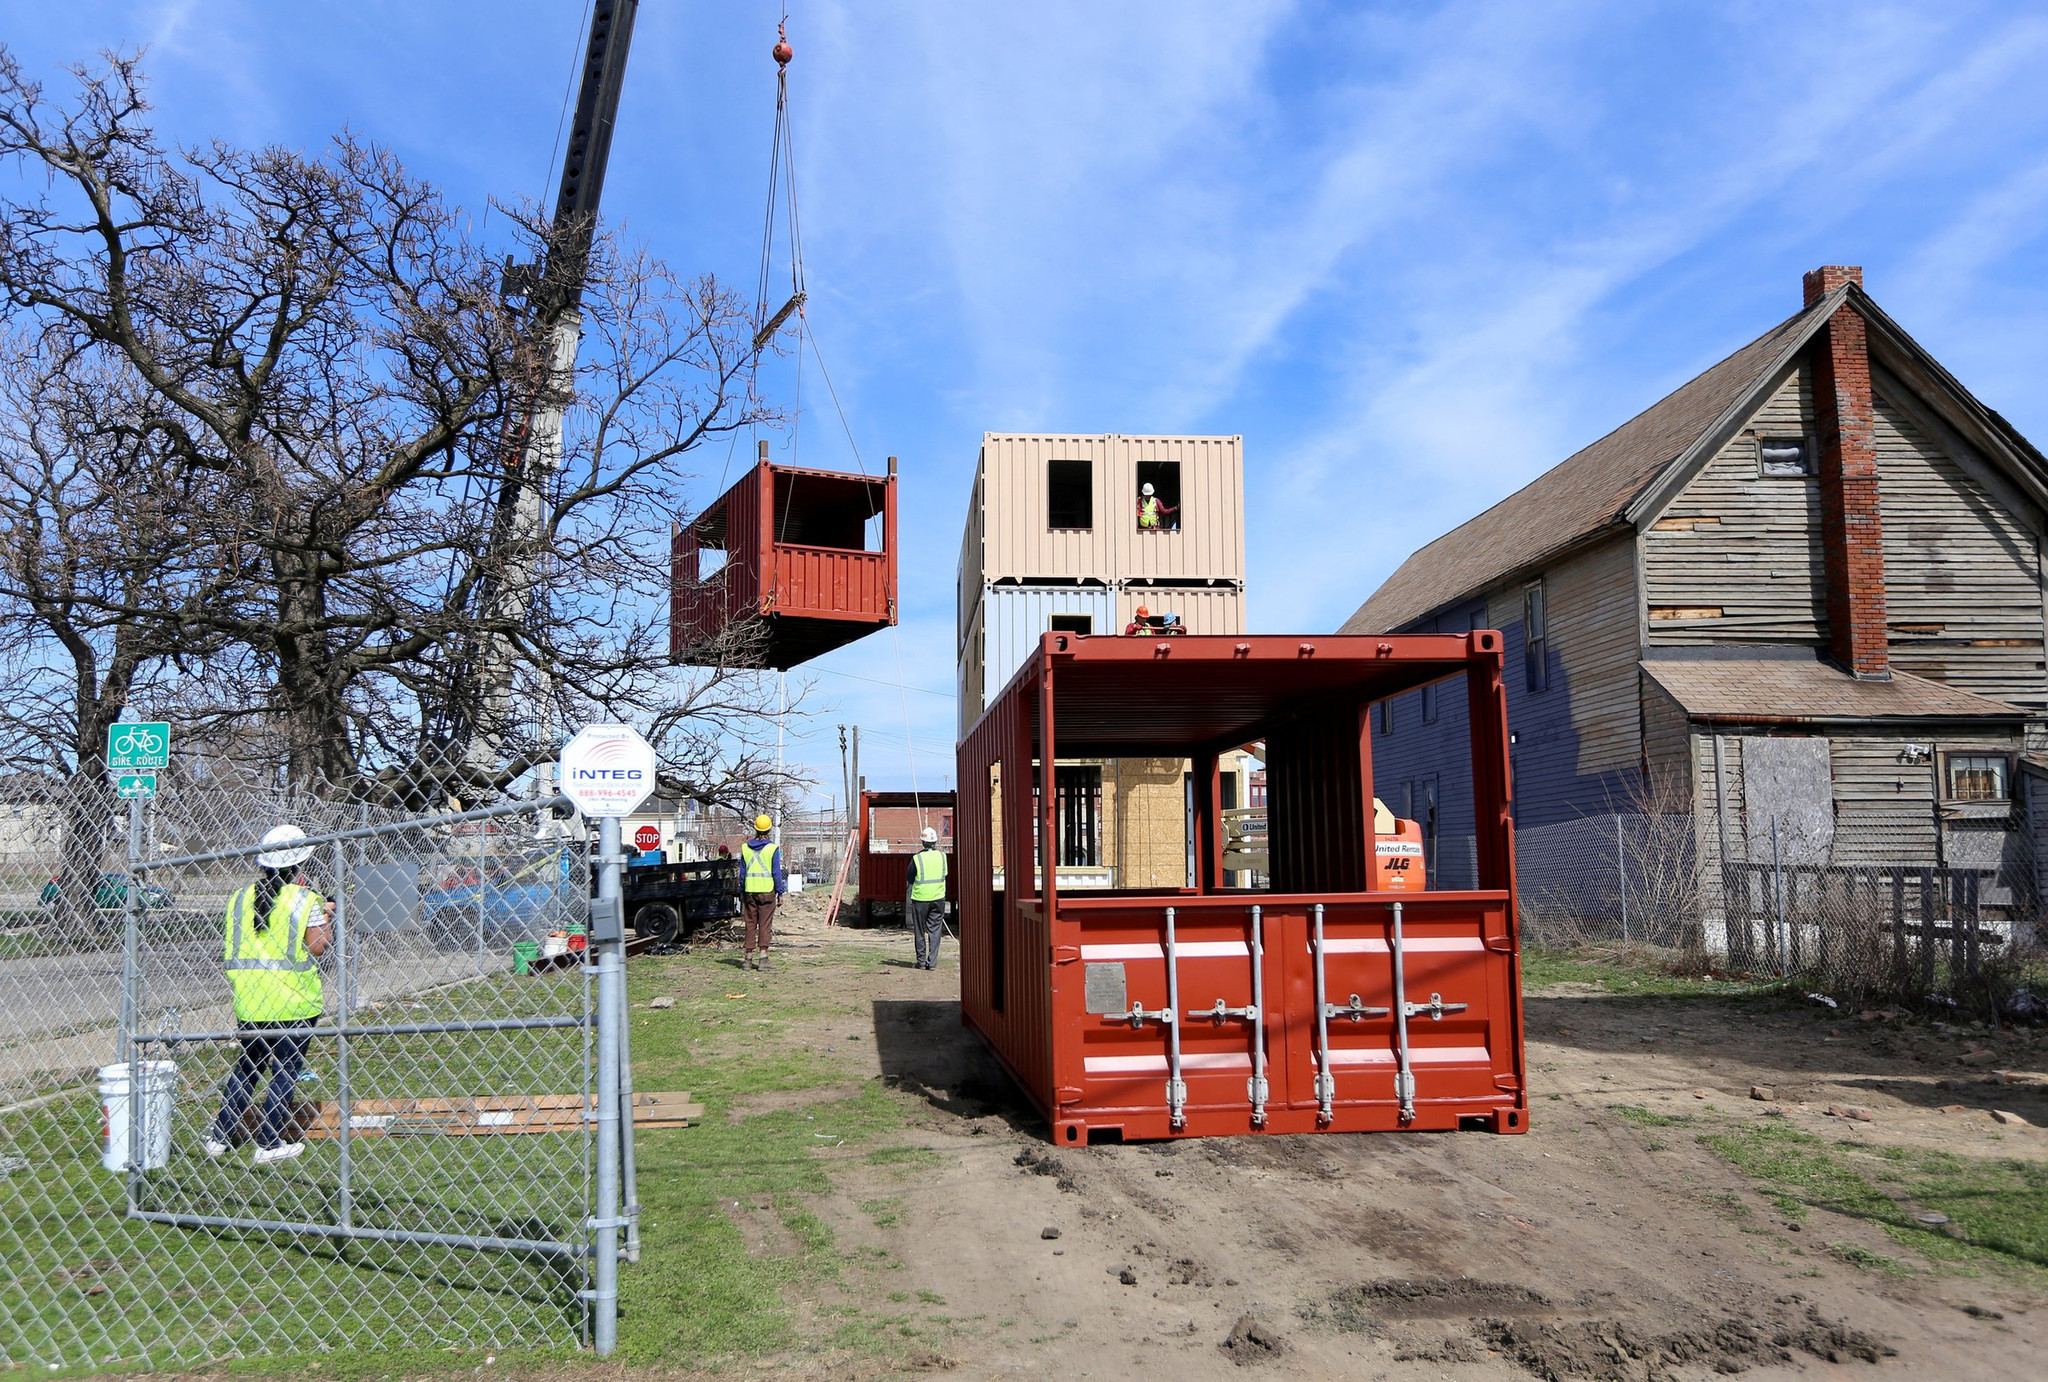 condos made of shipping containers in works in detroit - chicago